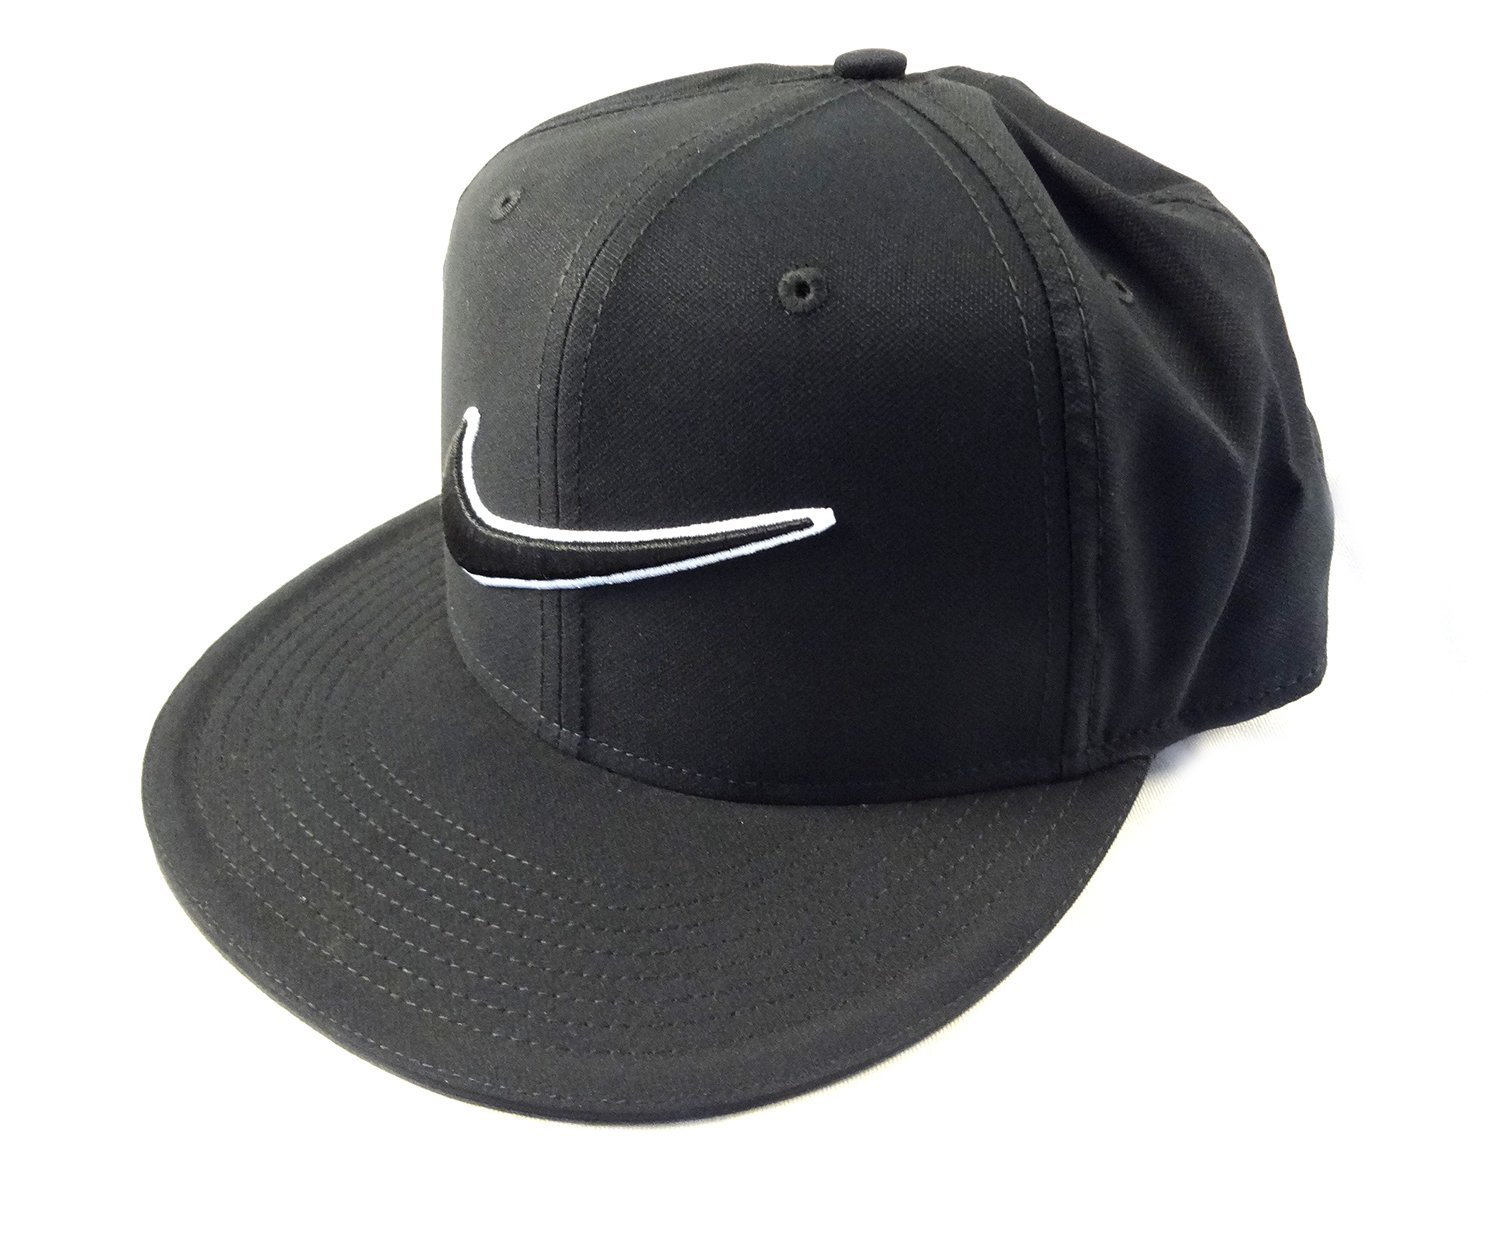 58e0a43d766 Get Quotations · Nike Golf True Snap Back Cap Black One Size